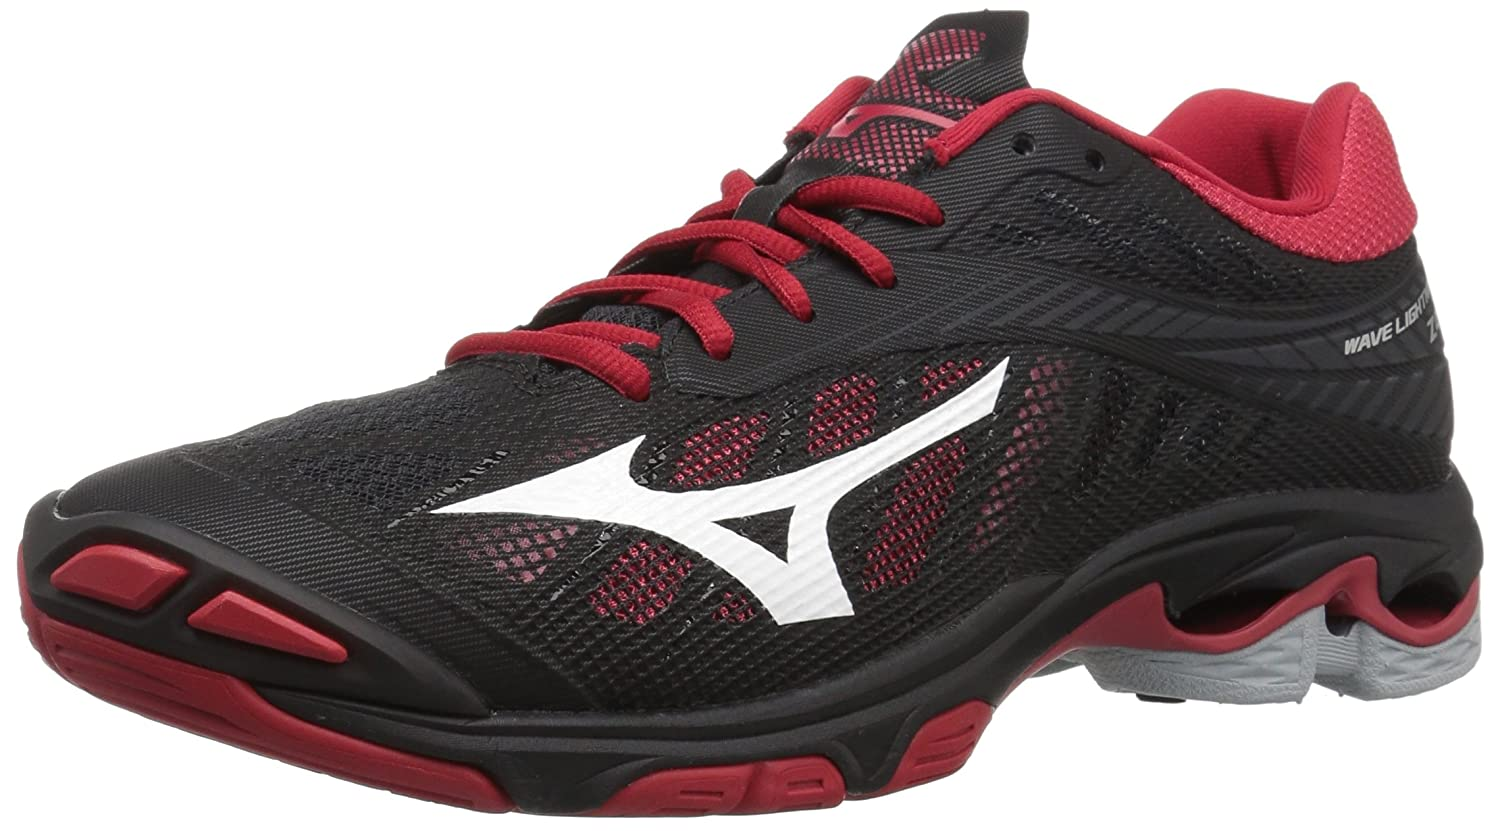 Mizuno Women's Wave Lightning Z4 Volleyball Shoe B07826LQ8P Women's 10.5 B US|Black/Red